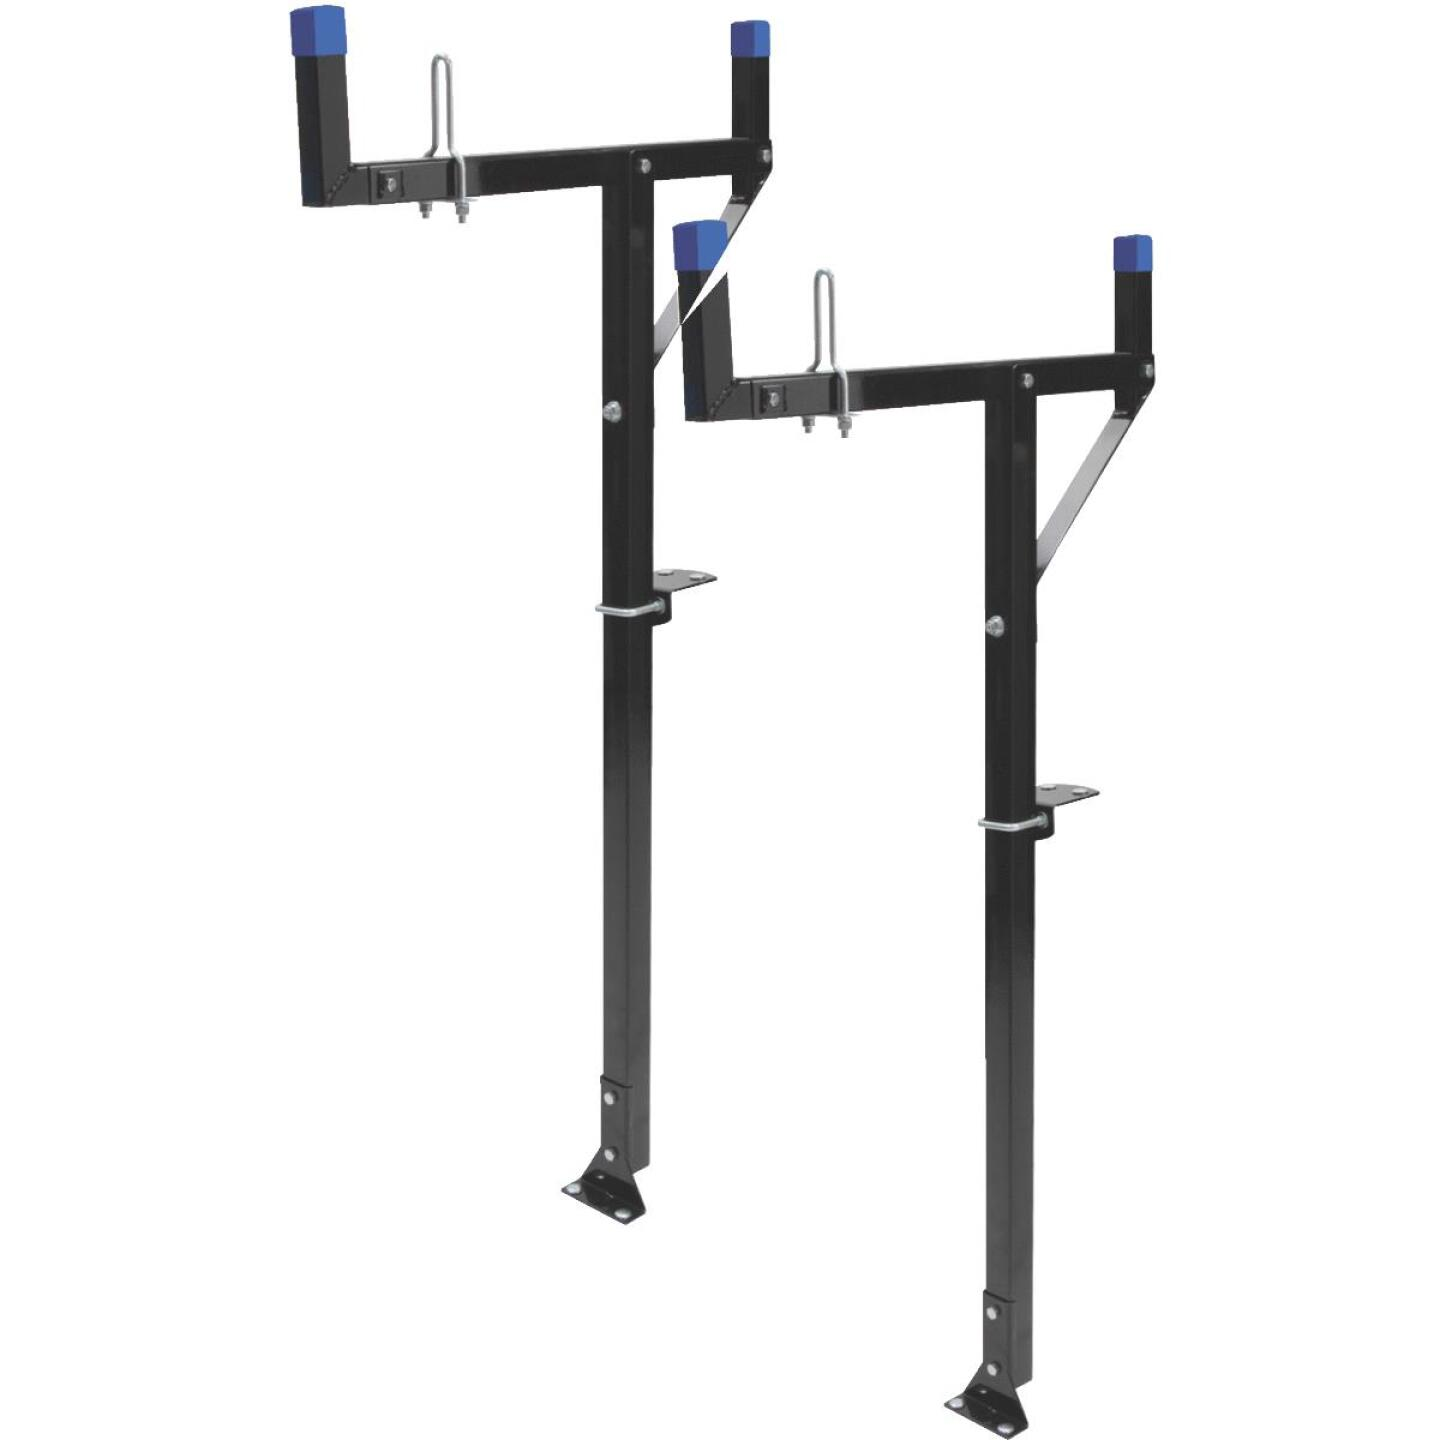 Werner Ladder 250 Lb Capacity Black Truck Rack Image 3